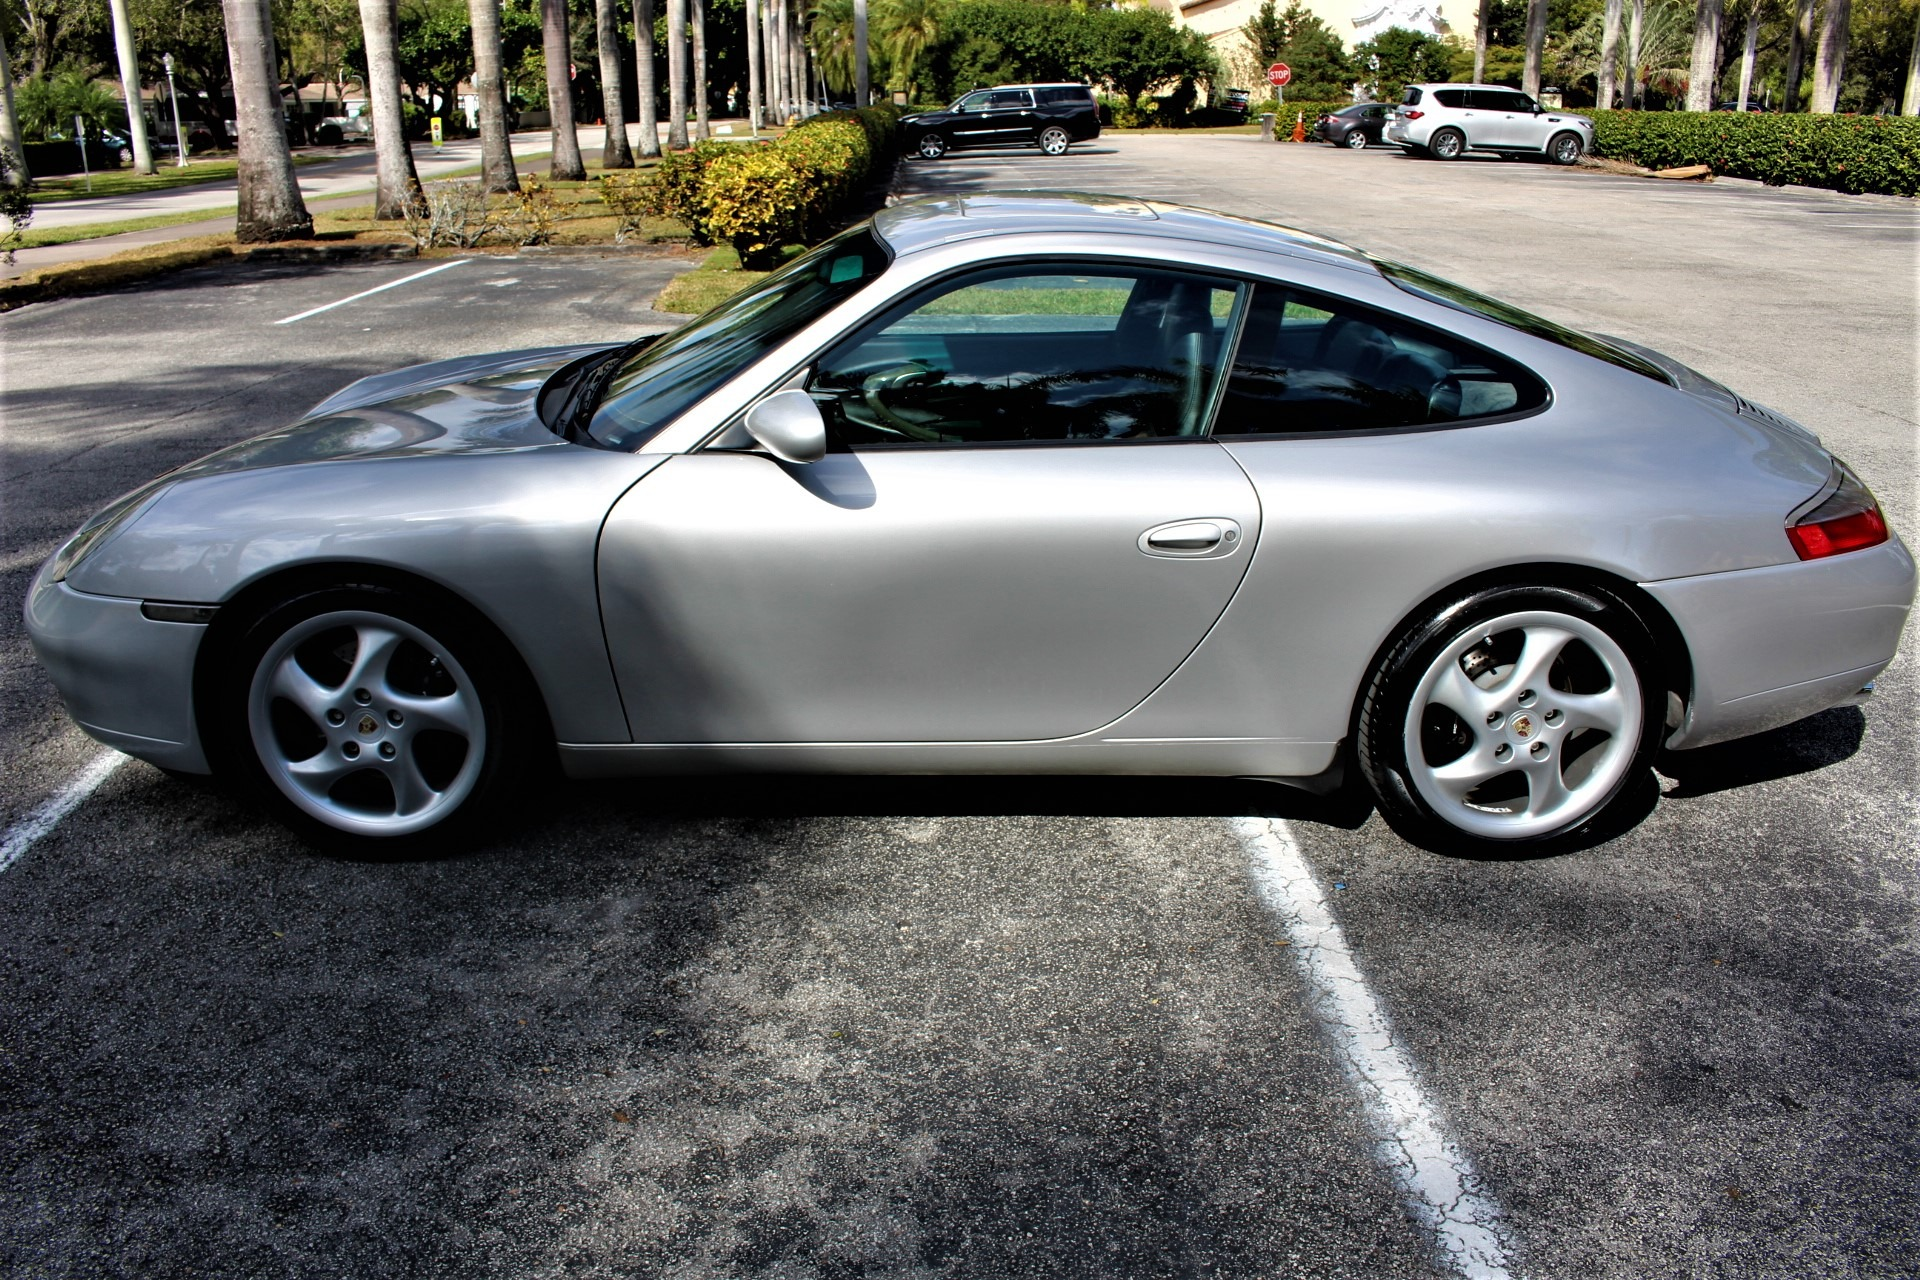 Used 2000 Porsche 911 Carrera for sale Sold at The Gables Sports Cars in Miami FL 33146 4